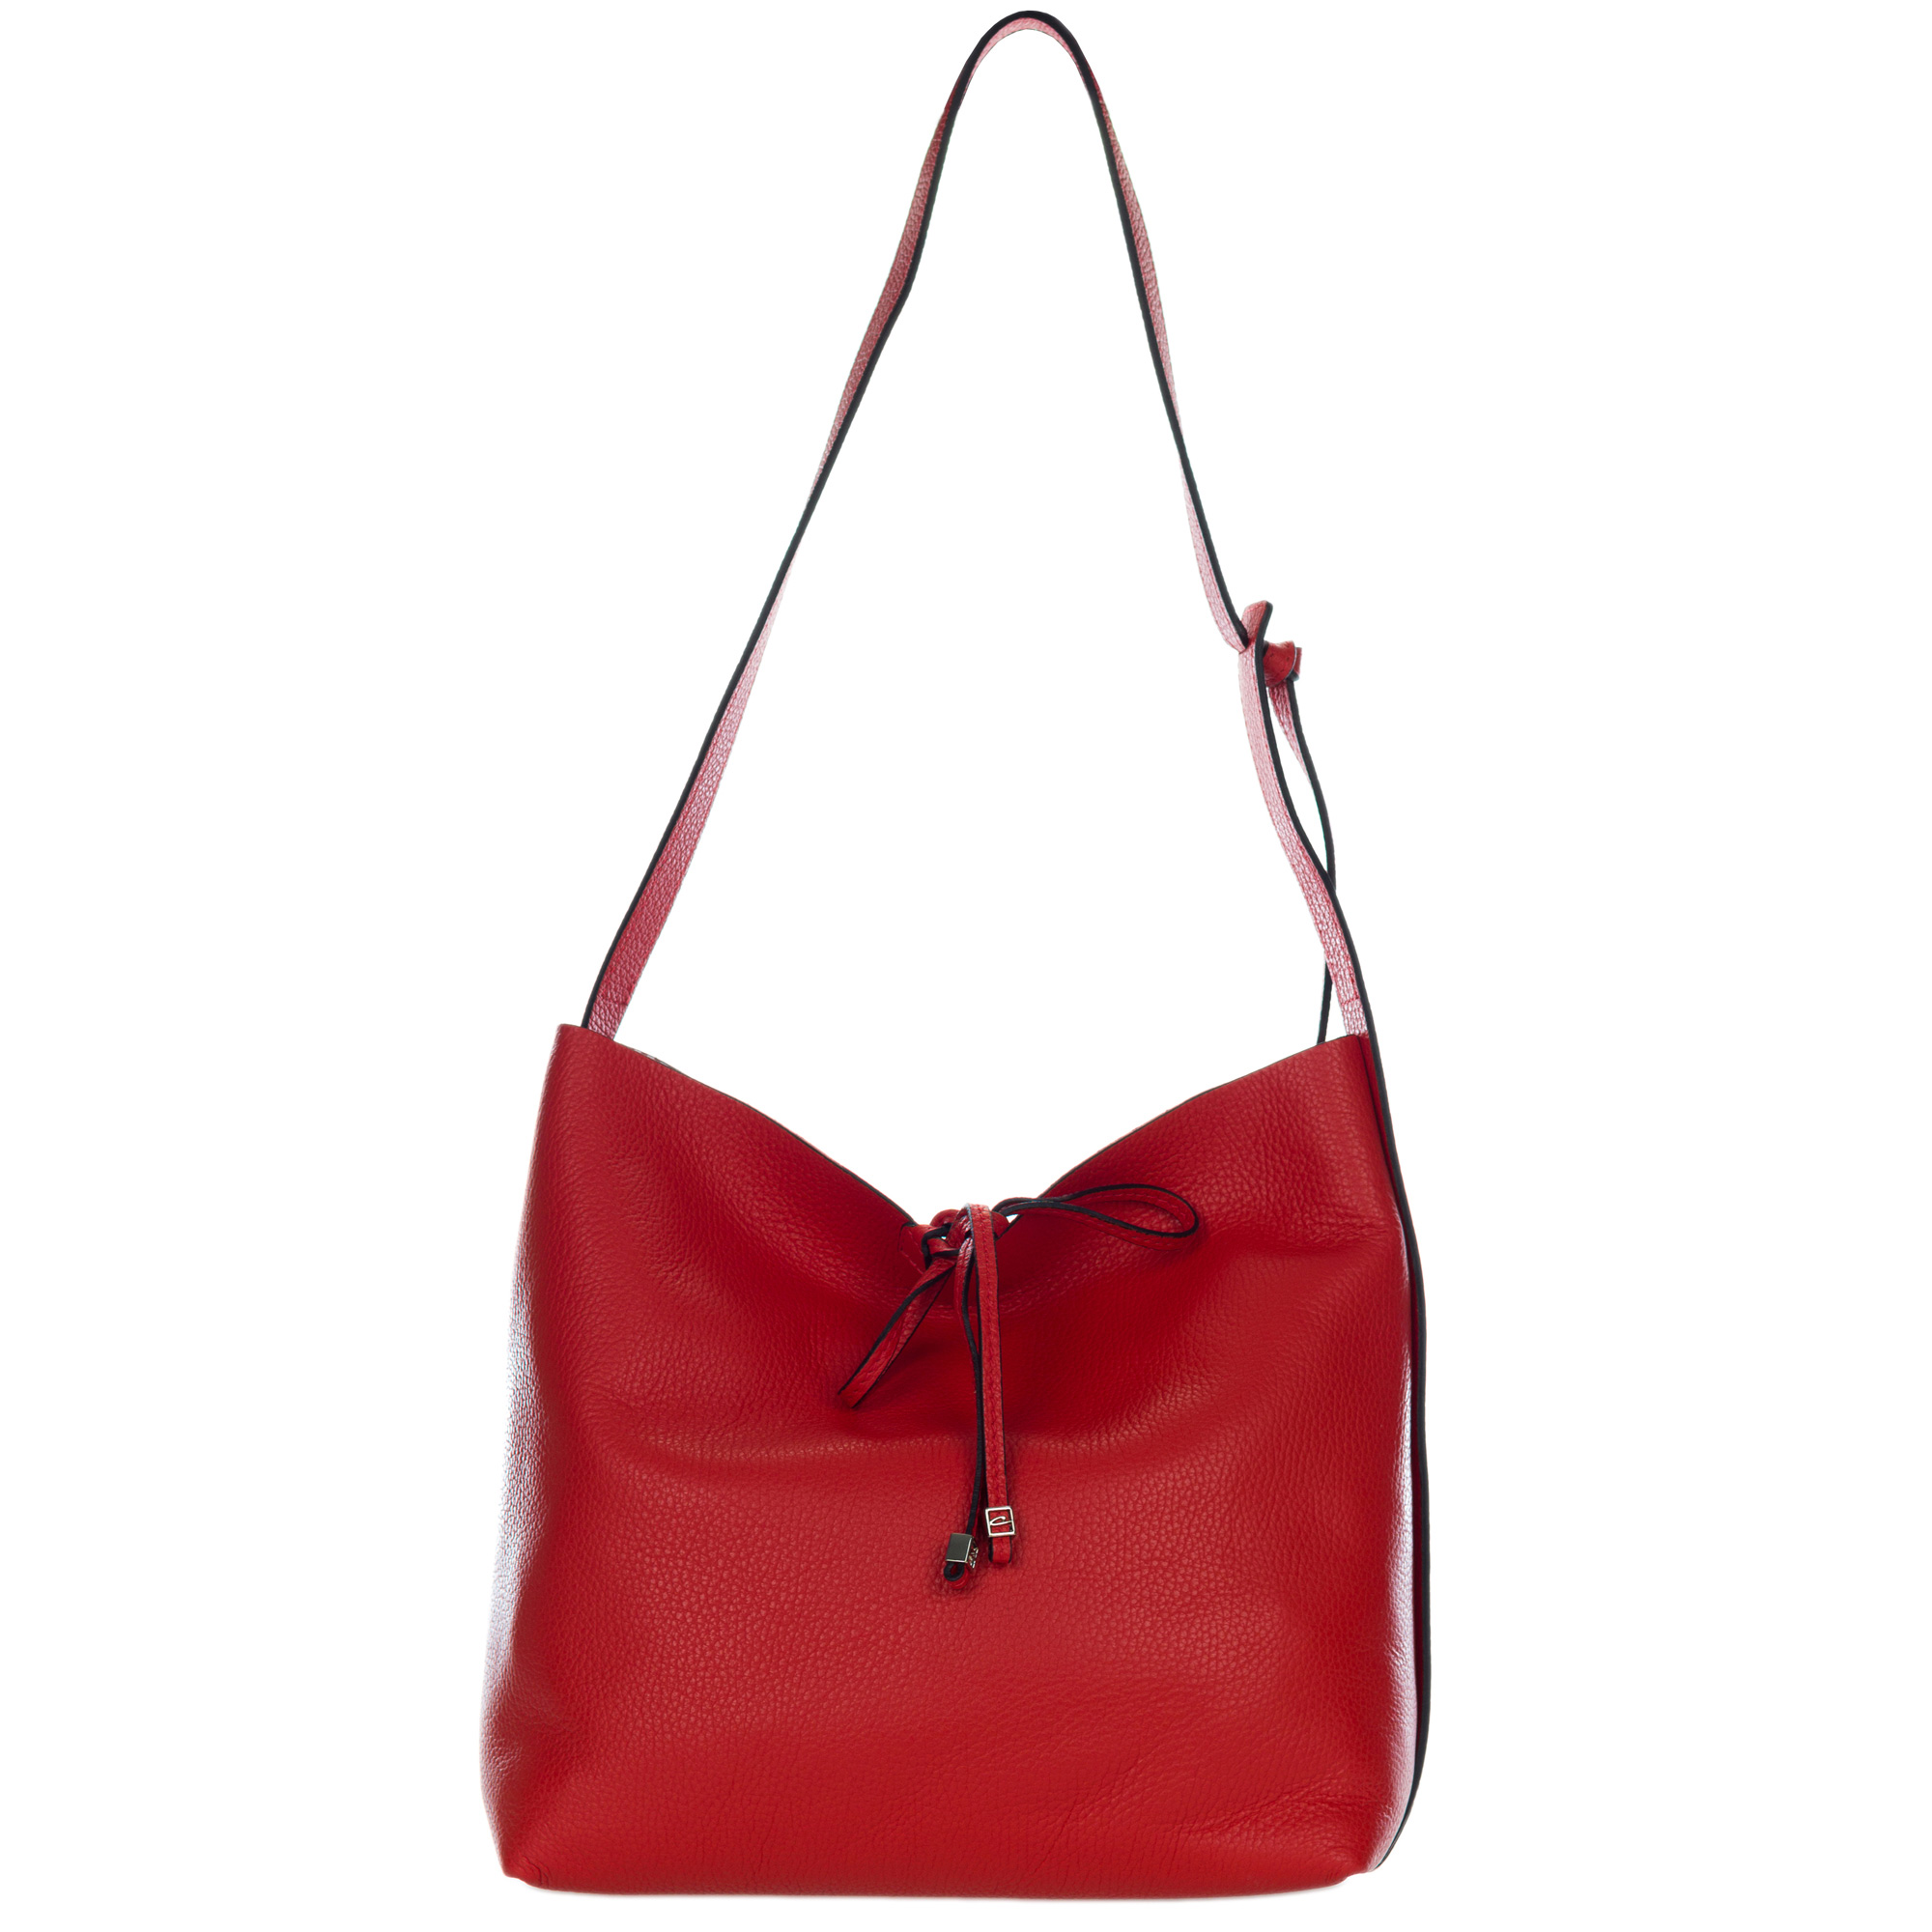 Gianni Chiarini Italian Made Red Pebbled Leather Slouchy Open Top Shoulder Bag